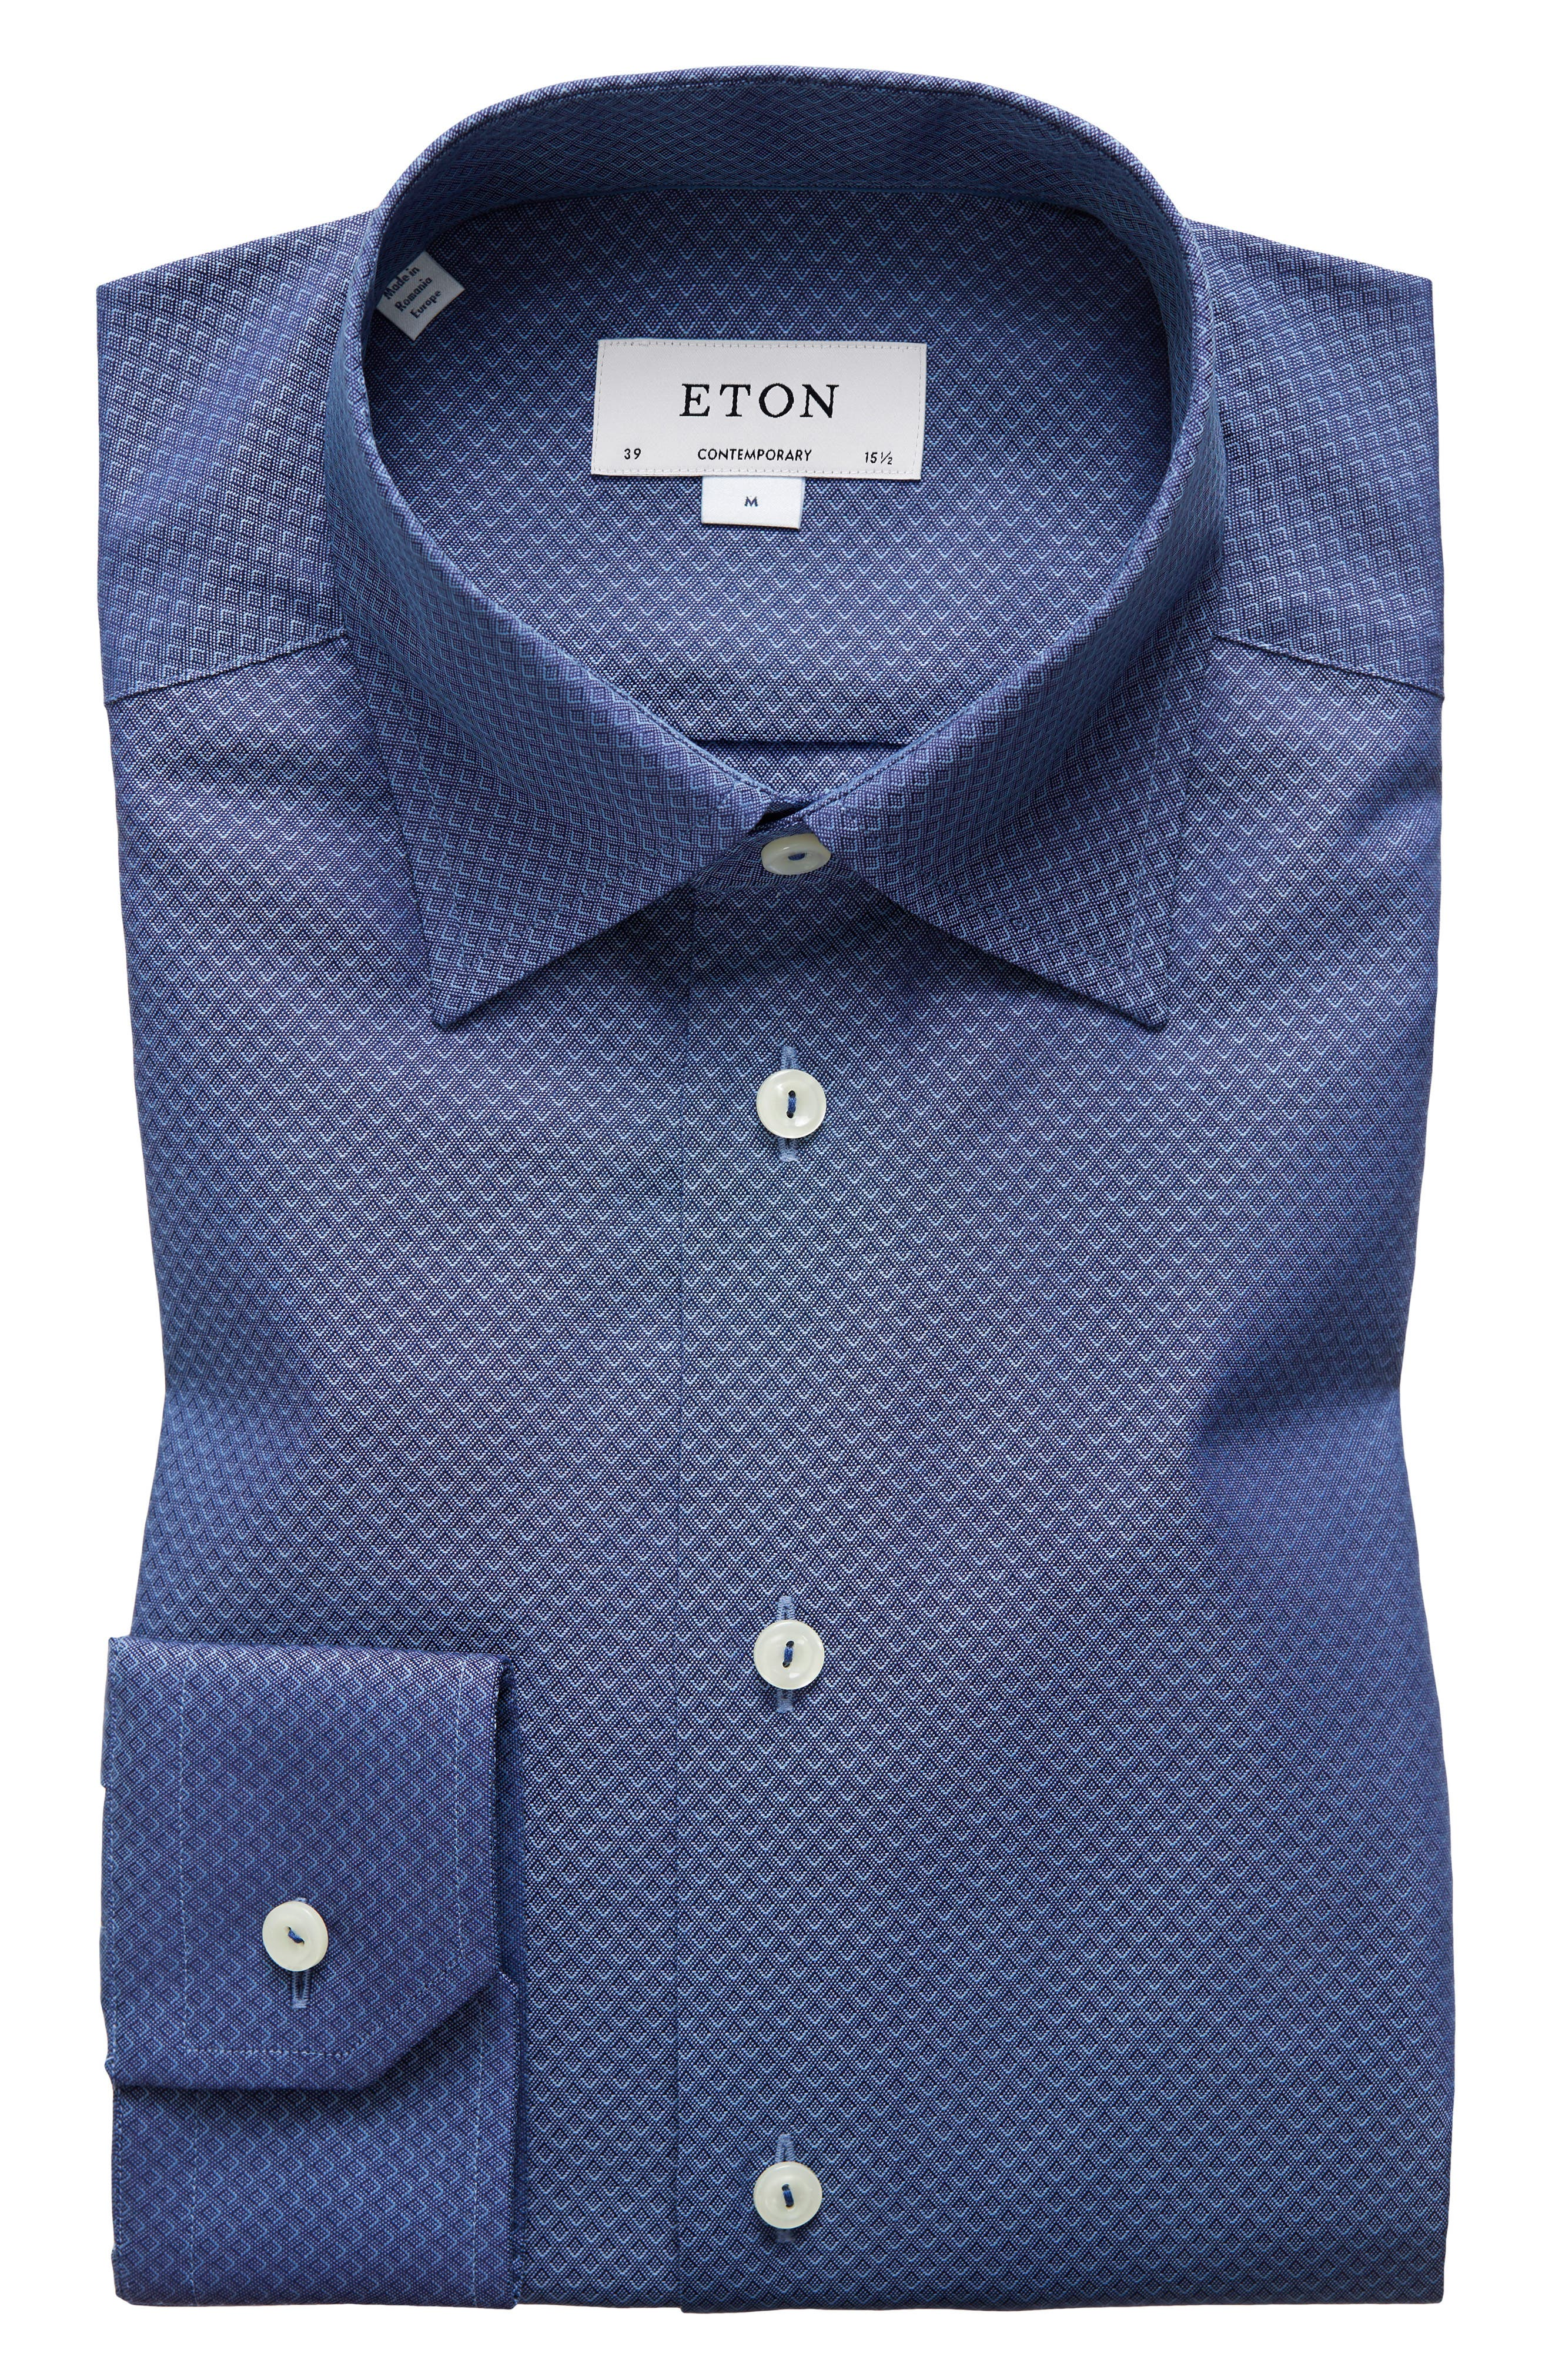 Contemporary Fit Geometric Dress Shirt,                             Main thumbnail 1, color,                             400